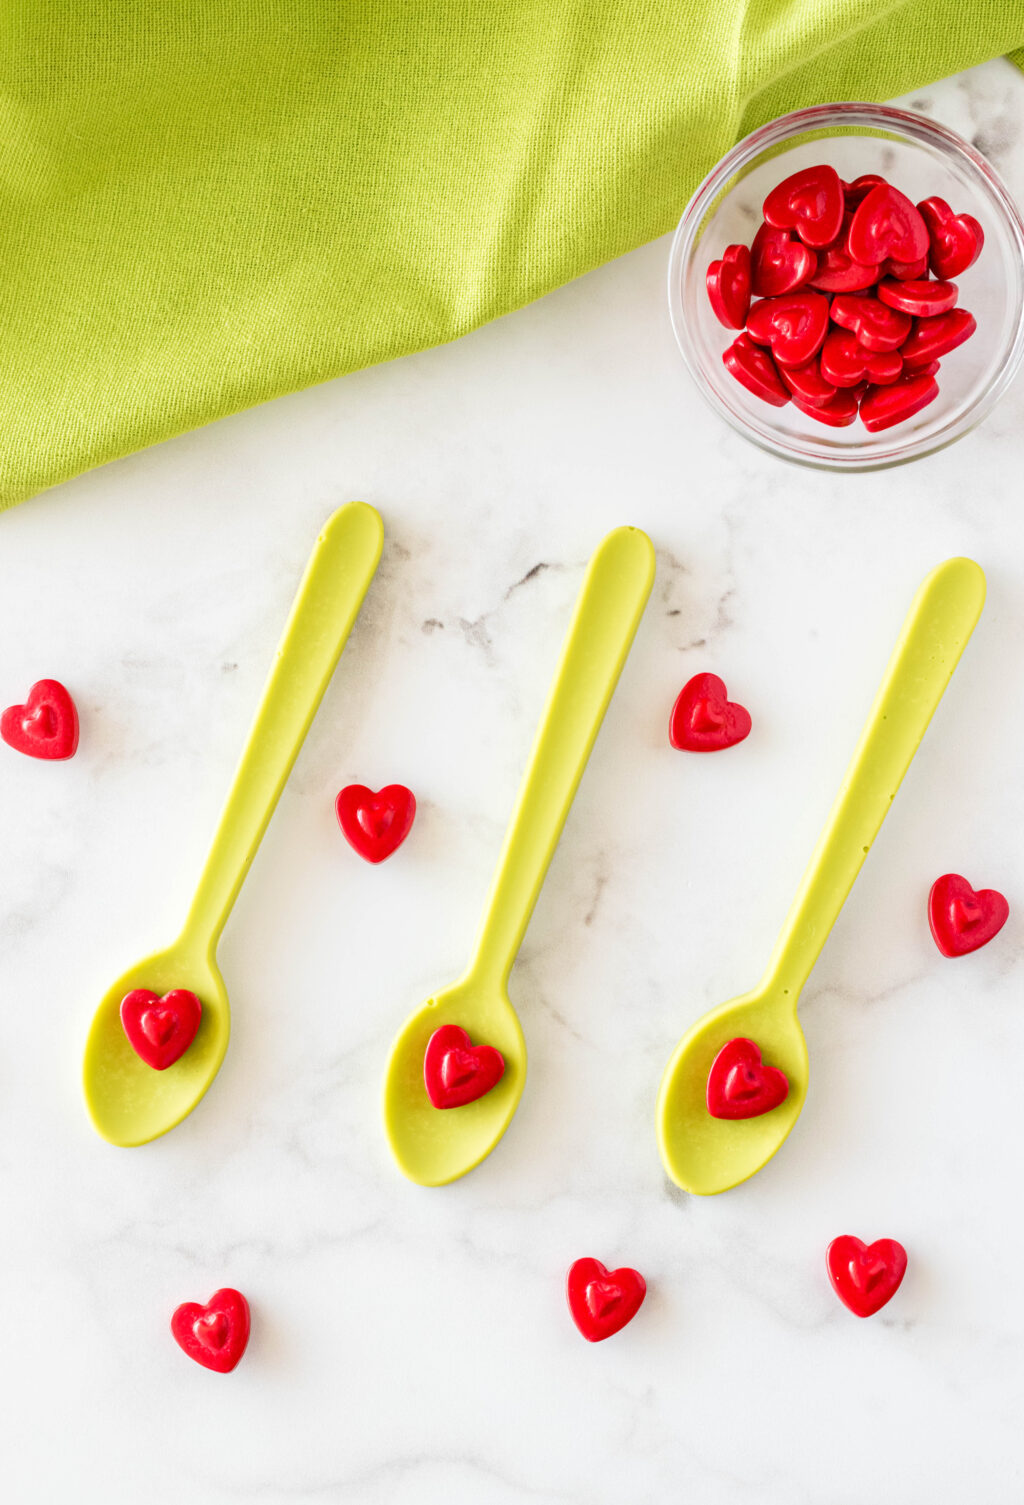 grinch hot chocolate spoons on table